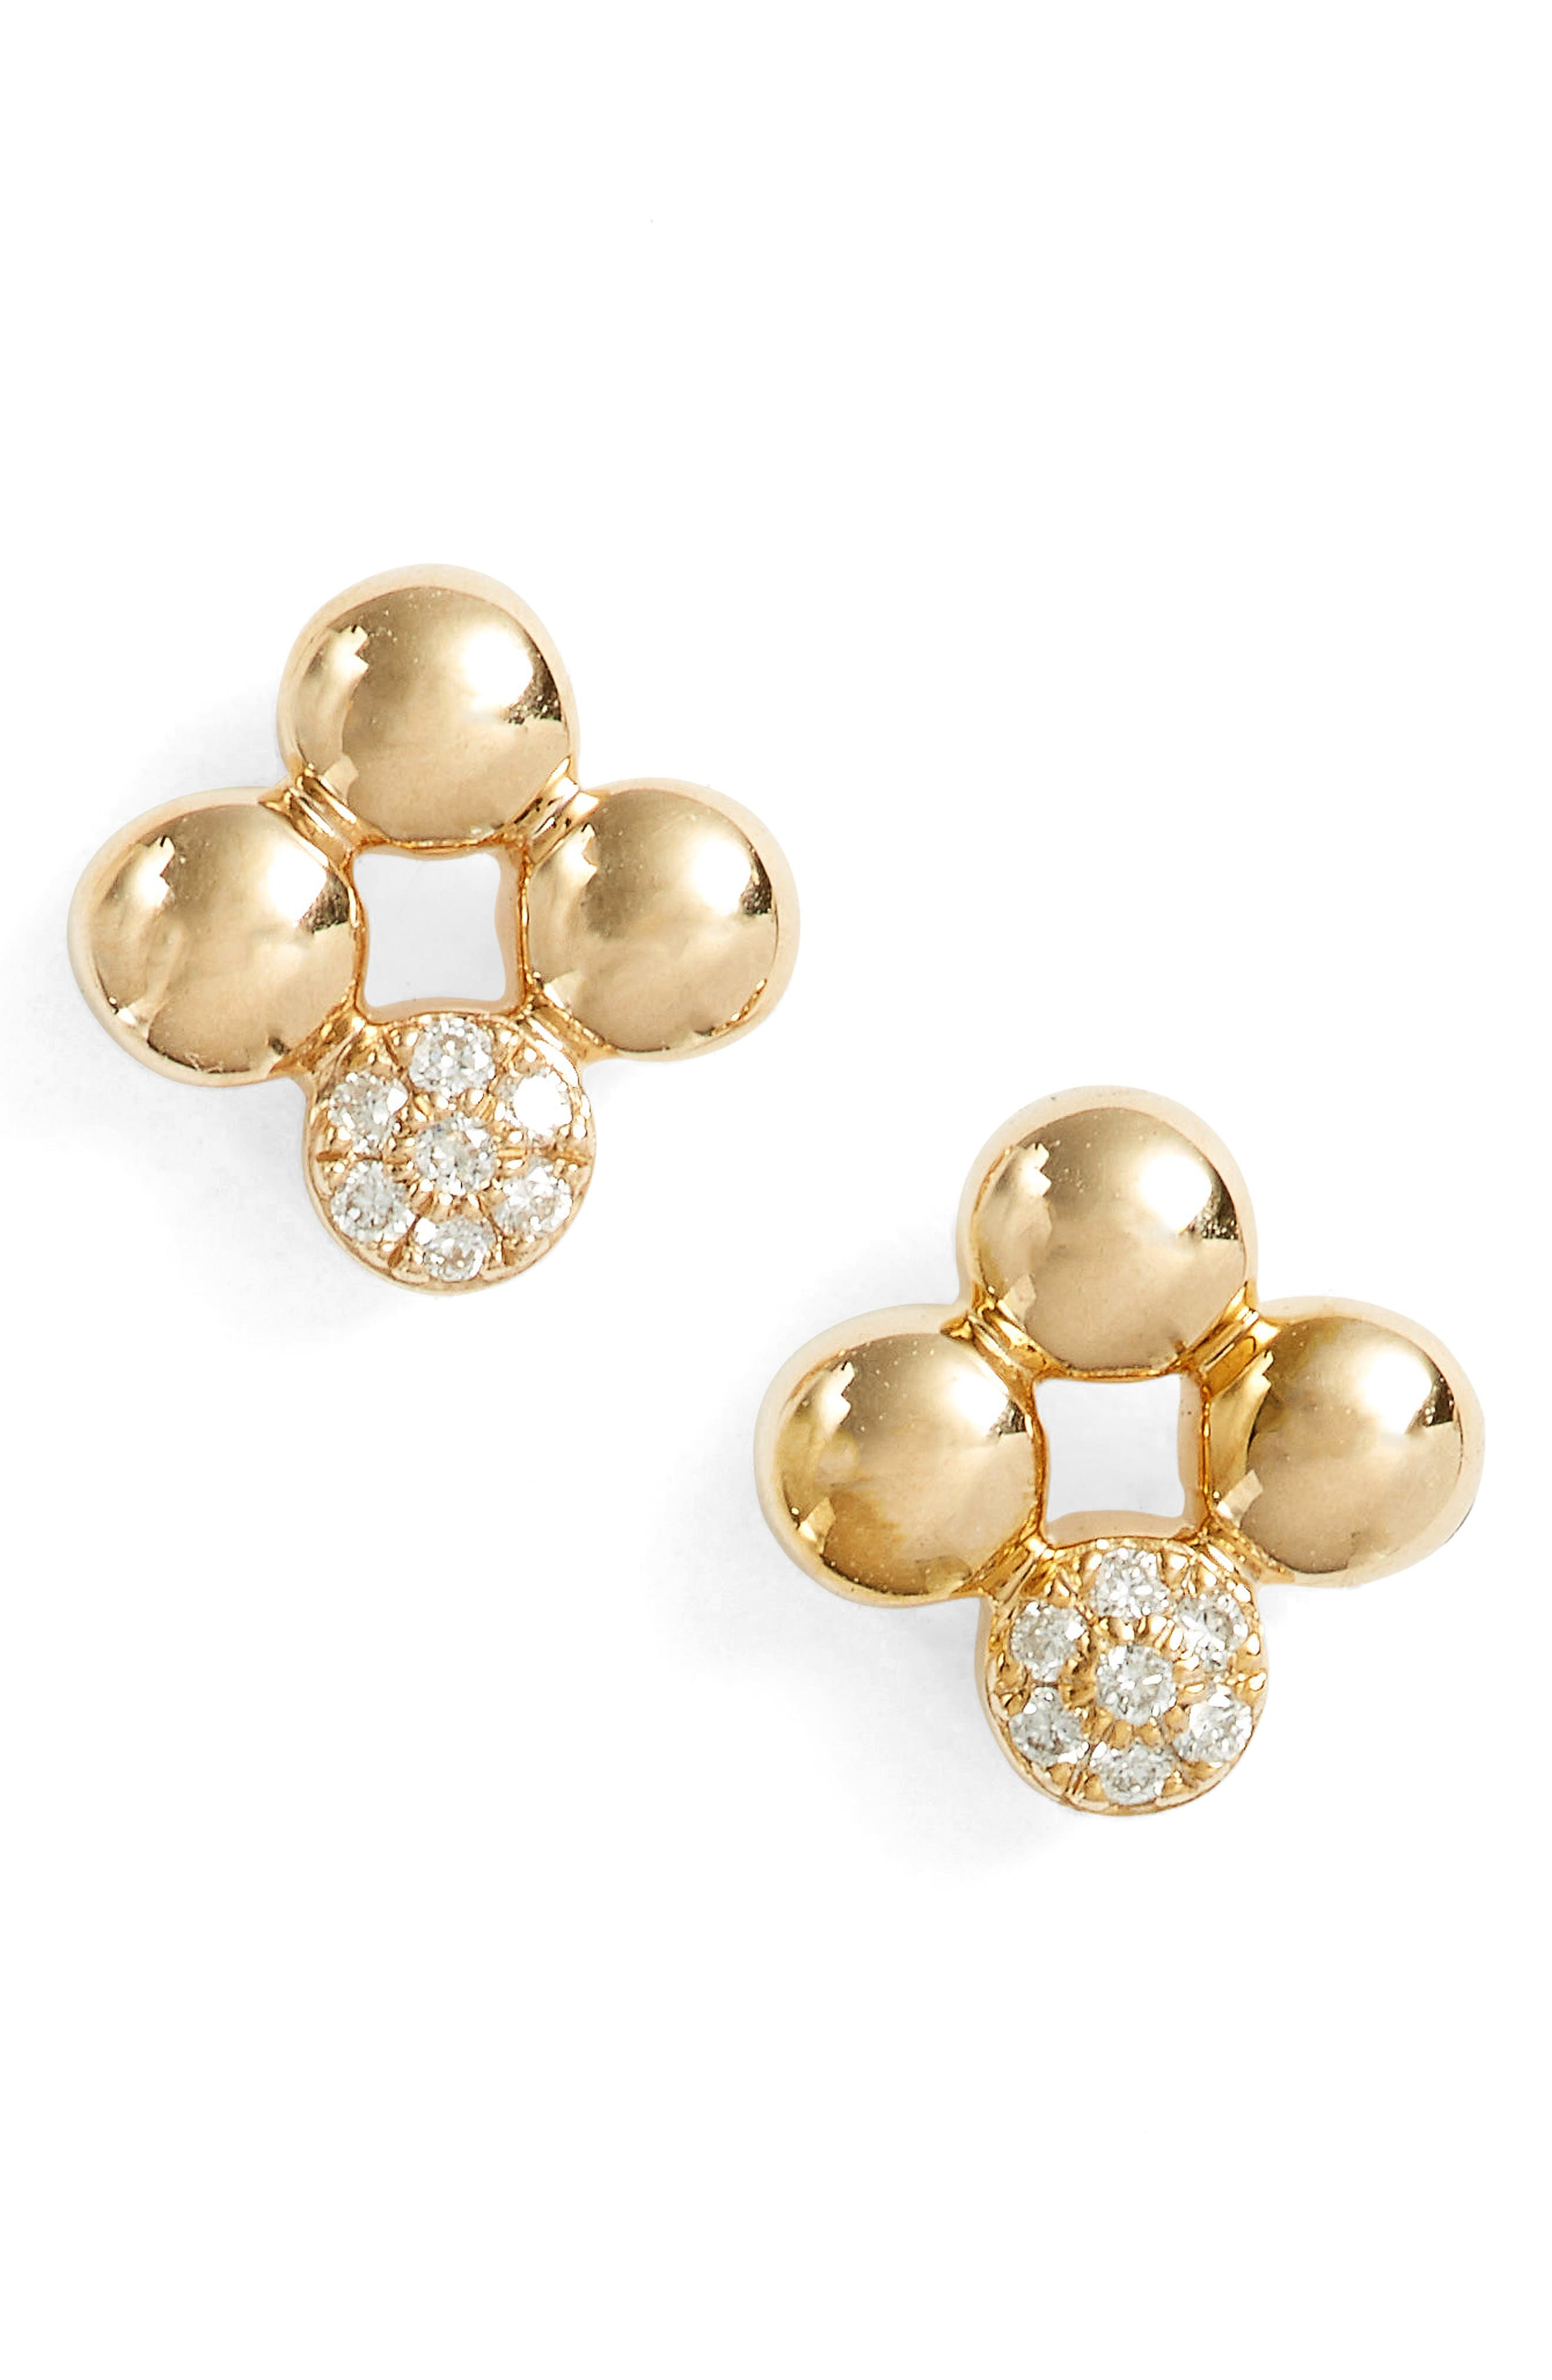 Poppy Rae Clover Diamond Stud Earrings,                             Main thumbnail 1, color,                             Yellow Gold